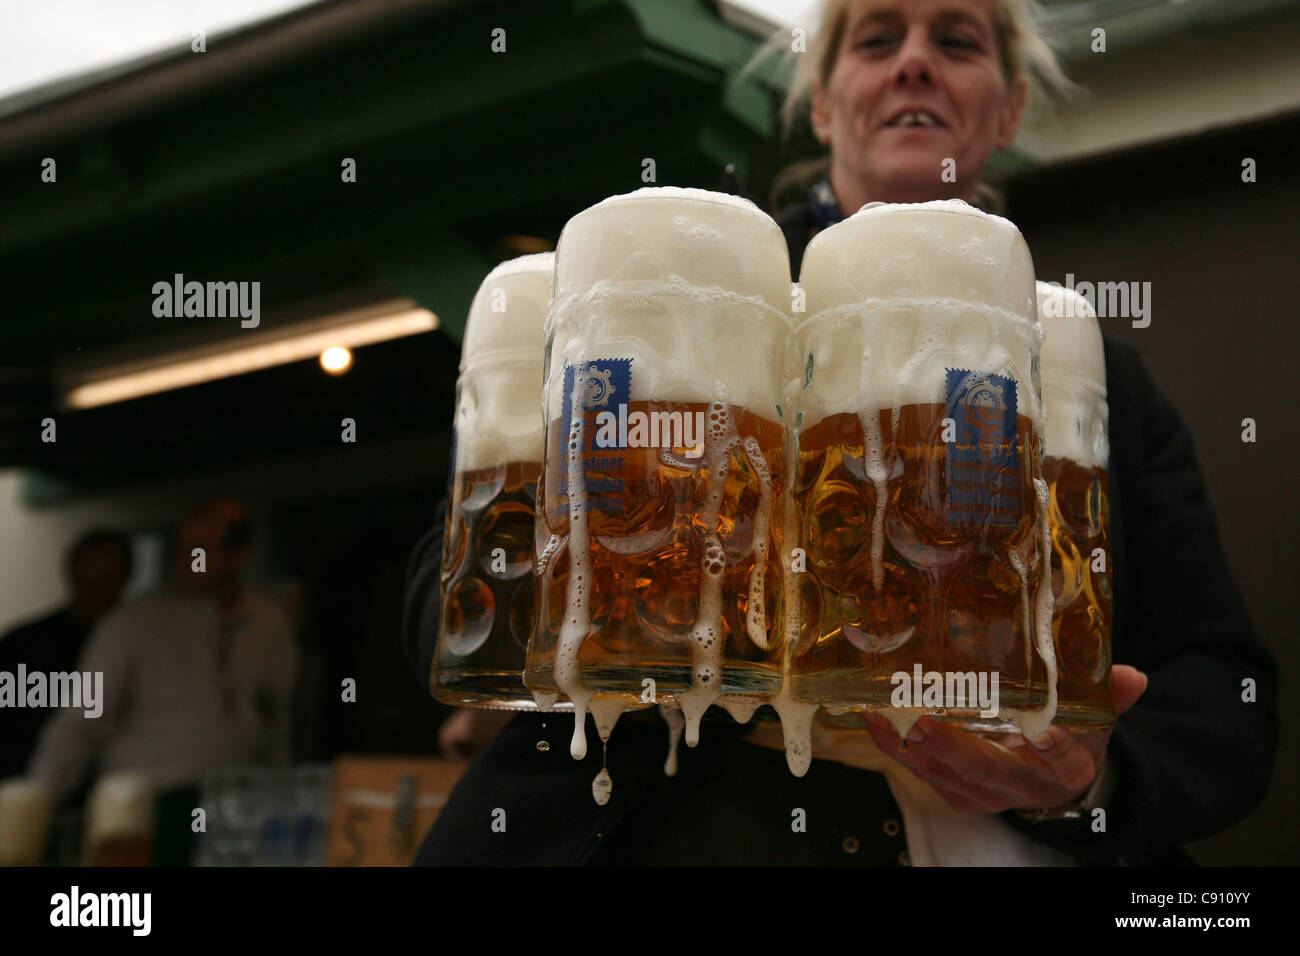 Waitress of the Augustiner Festhalle at the Oktoberfest Beer Festival in Munich, Germany. Stock Photo